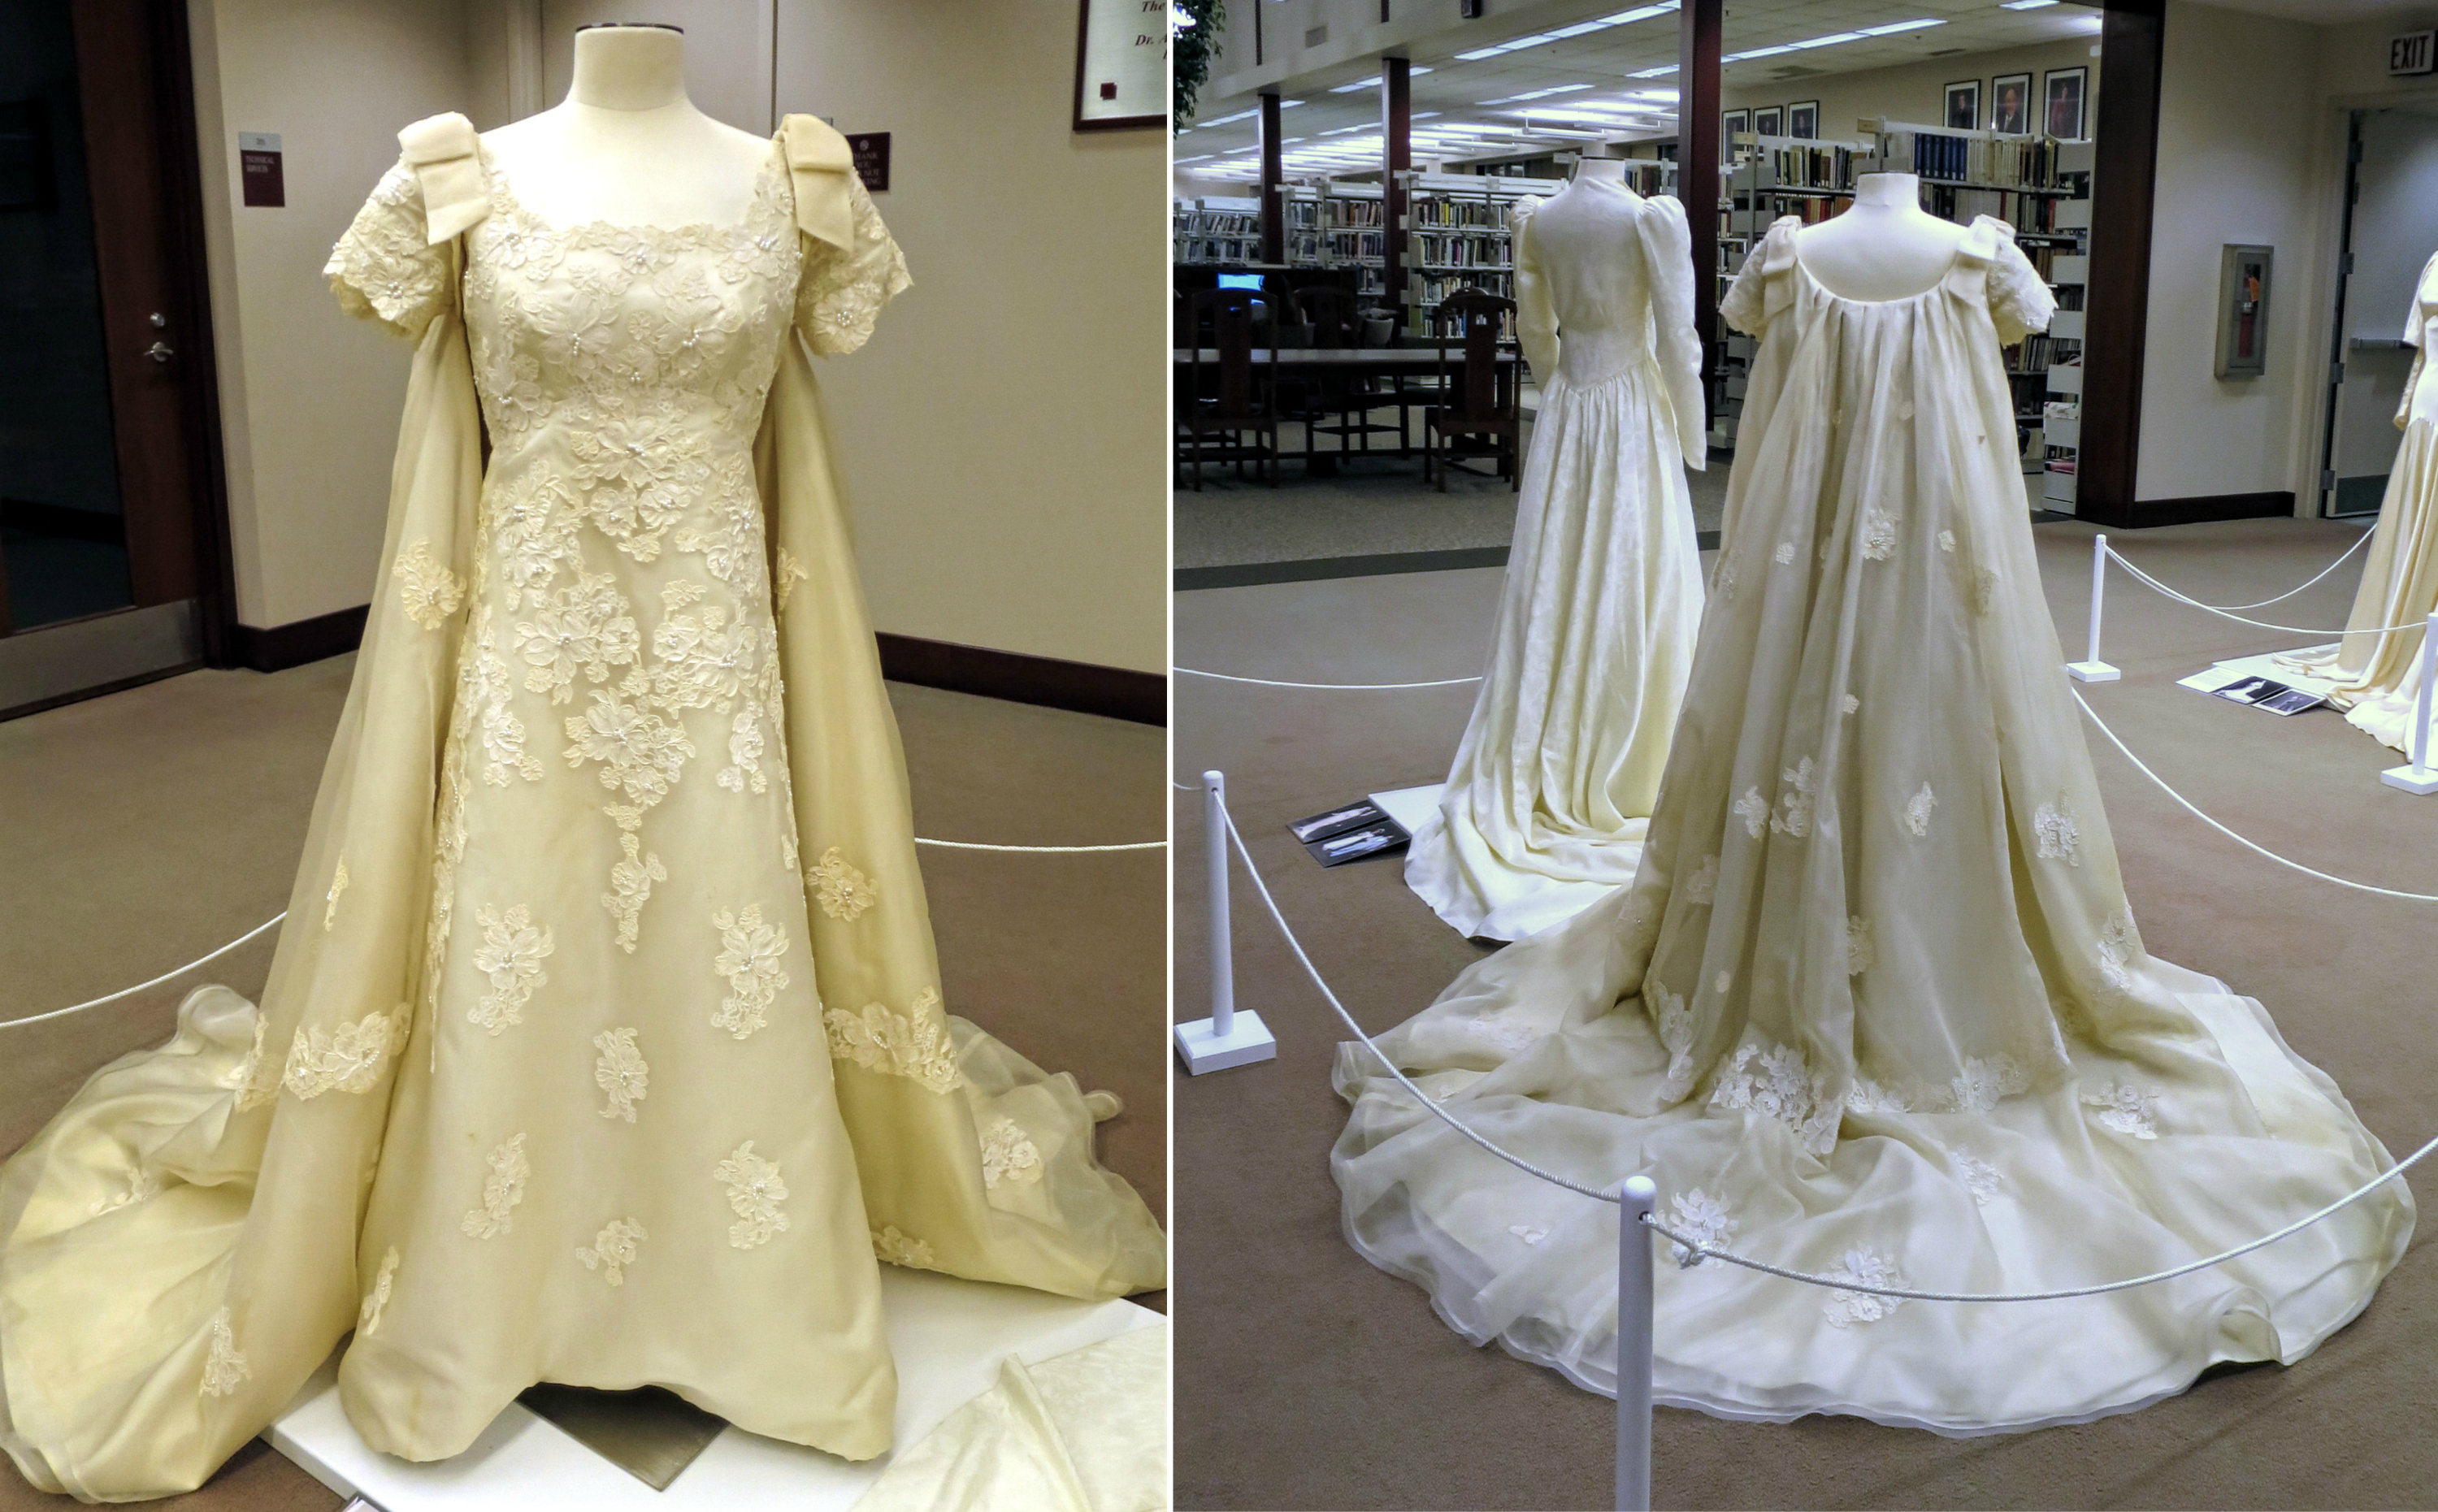 EastFallsLocal 60s wedding dress collage